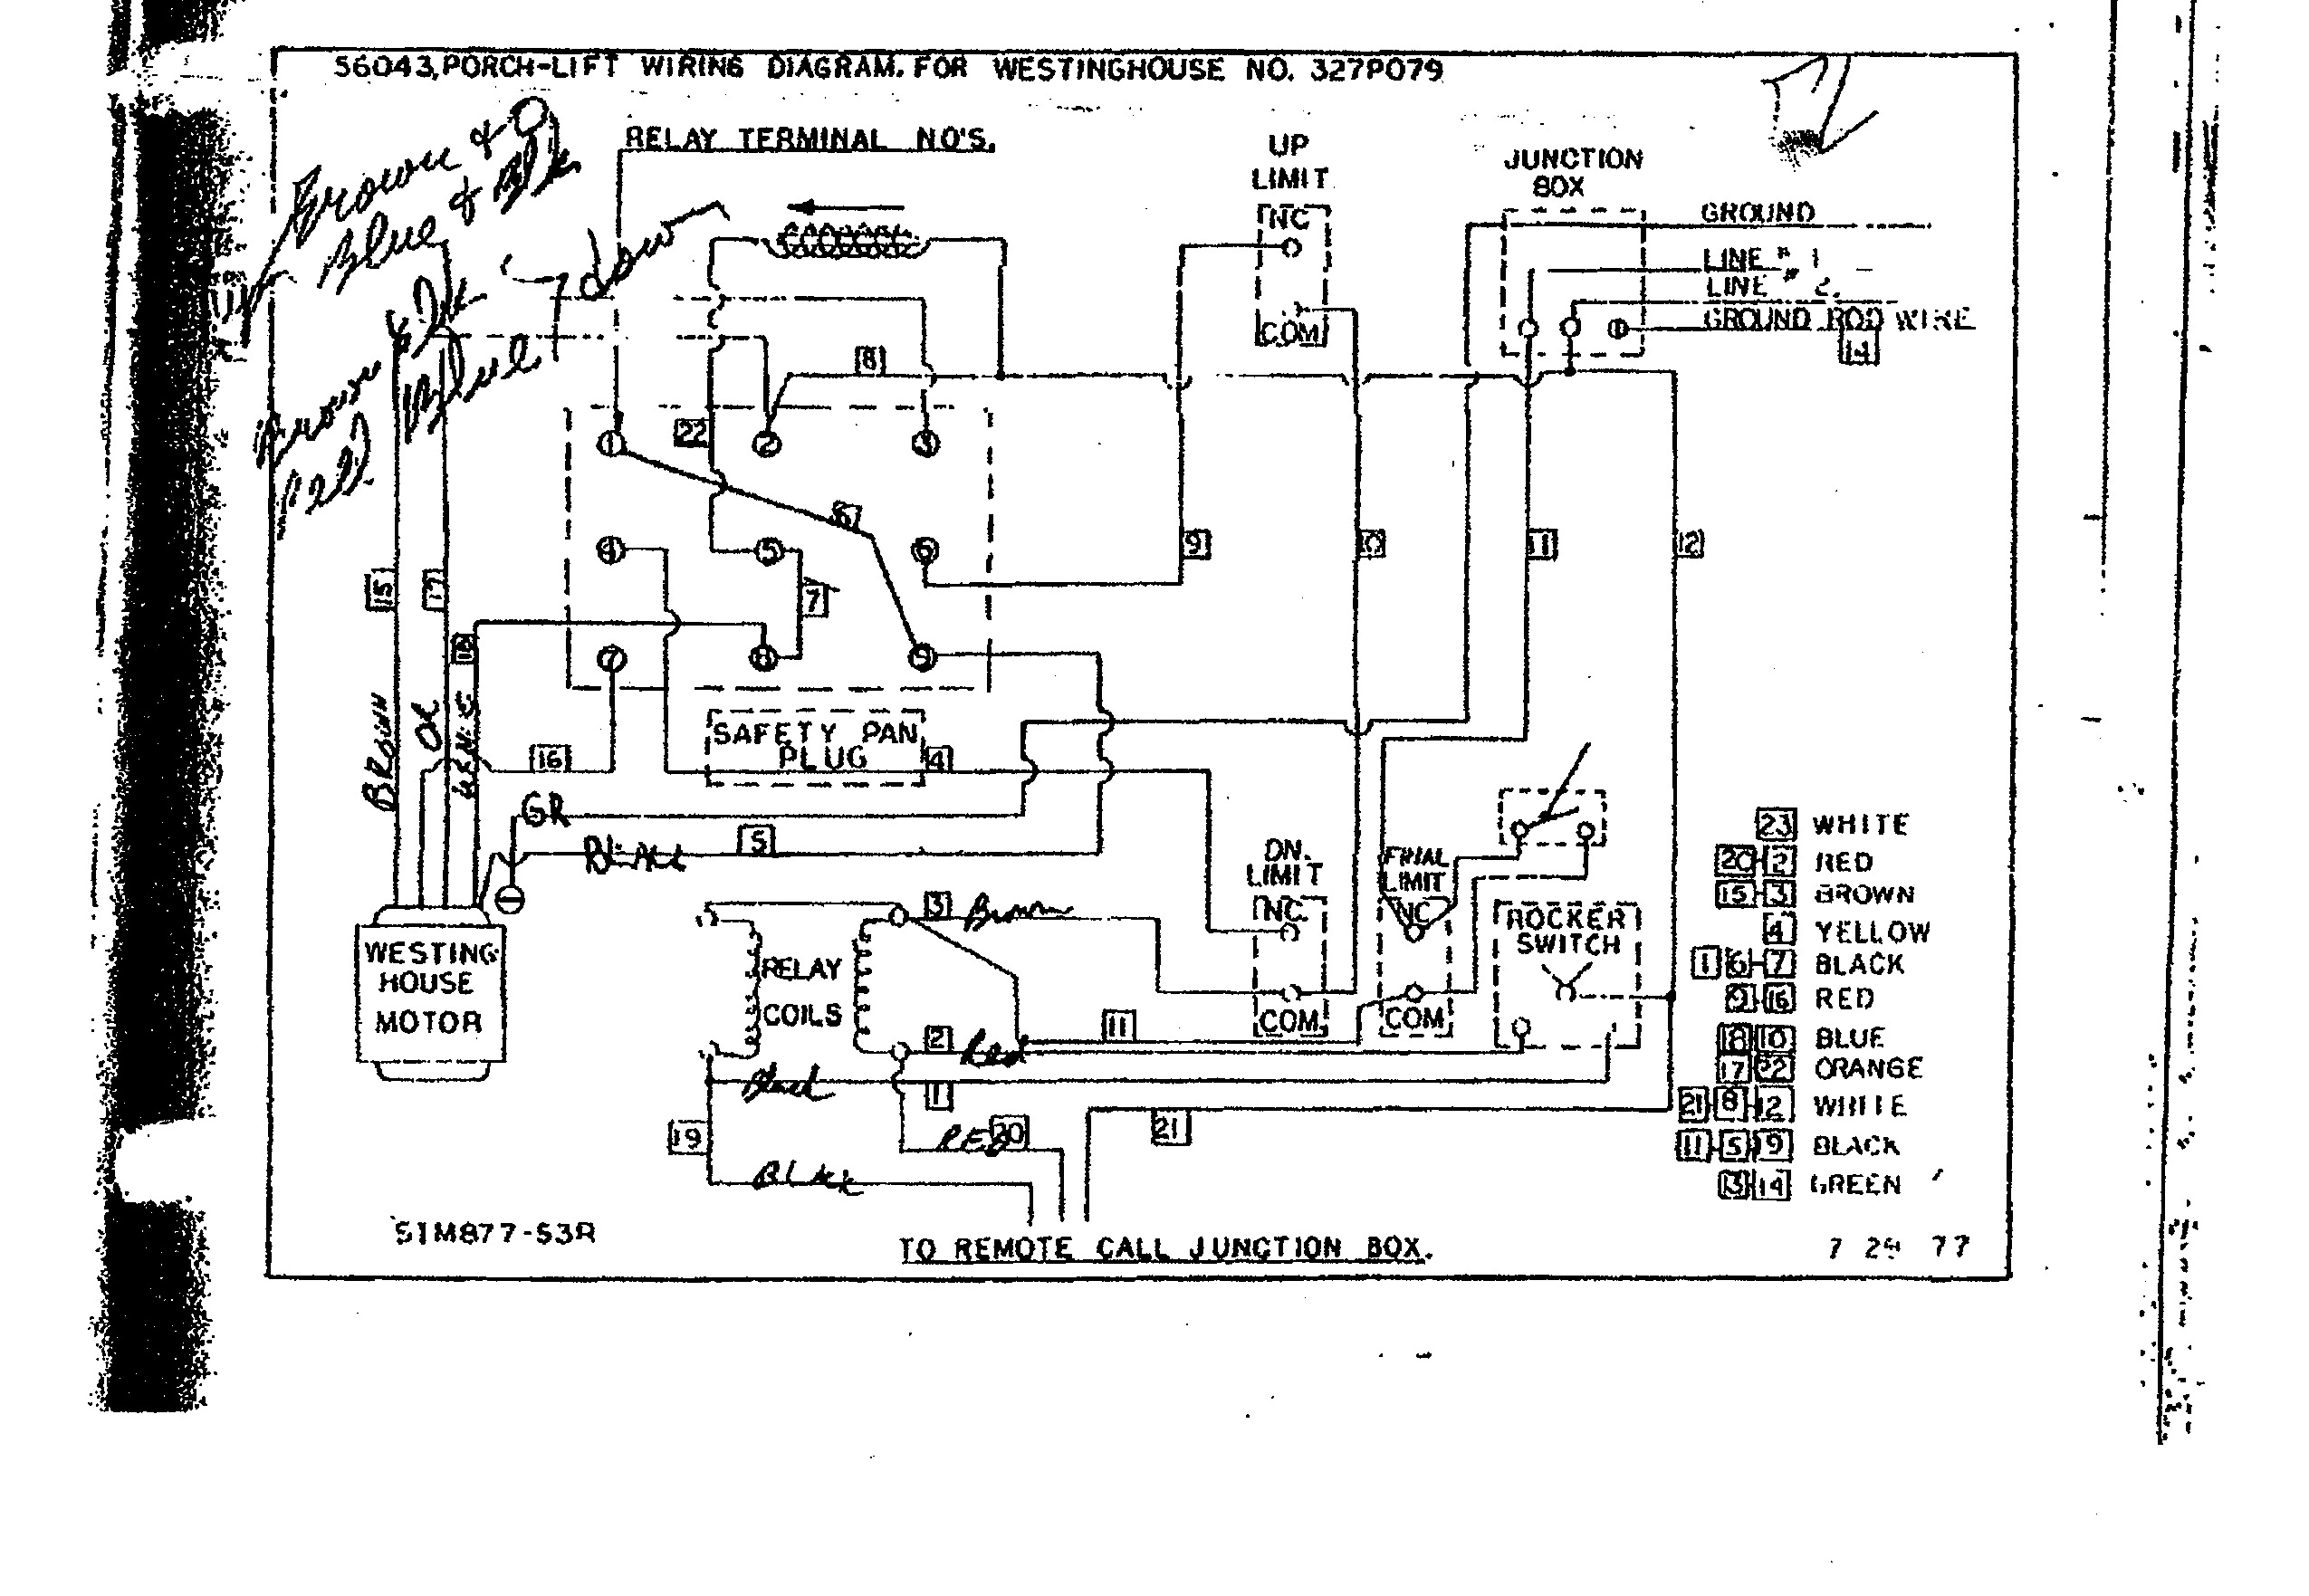 [DIAGRAM_38DE]  Building Lift Wiring Diagram. collection of ricon s series wheelchair lift  wiring. porch lift vertical platform lift wiring diagram collection. ricon wheelchair  lift wiring diagram free wiring diagram. how to lift wiring | Braun Wheelchair Lift Wiring Diagram |  | A.2002-acura-tl-radio.info. All Rights Reserved.